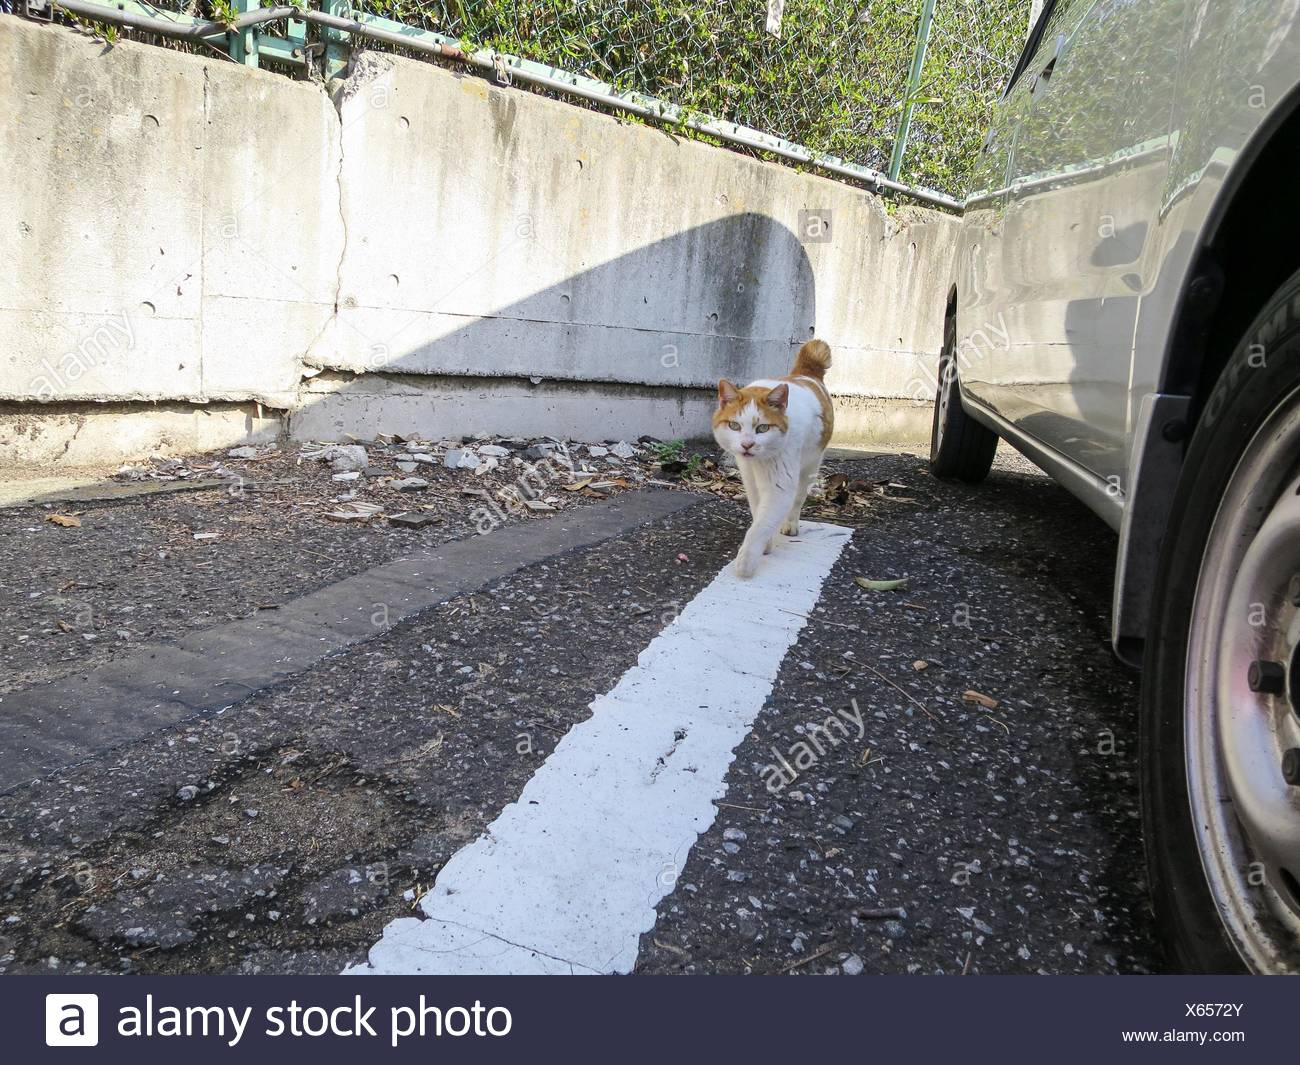 Cat Walking On Road By Parked Car - Stock Image